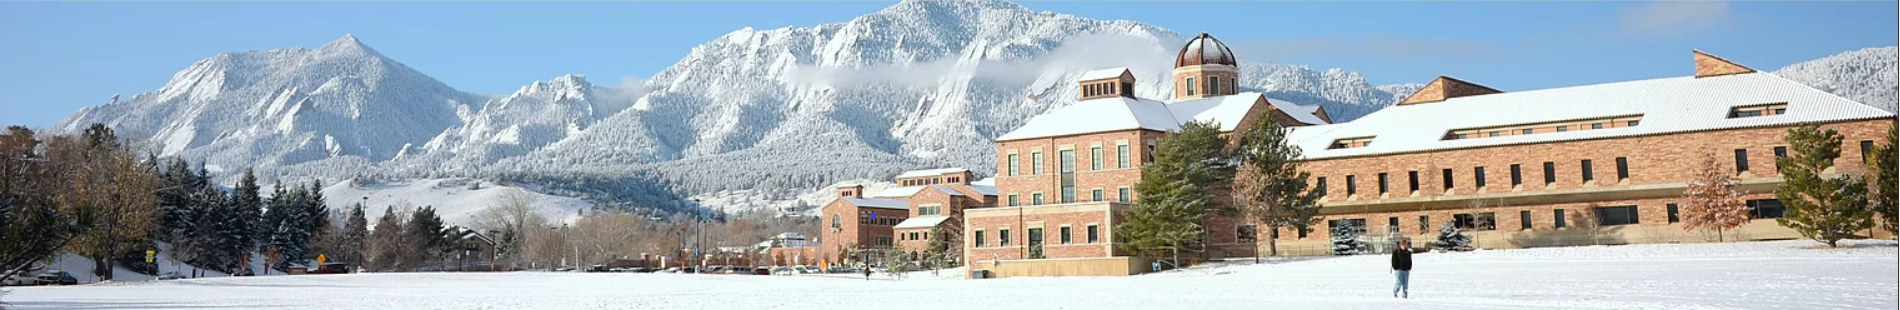 Leeds business building and the mountains covered in snow